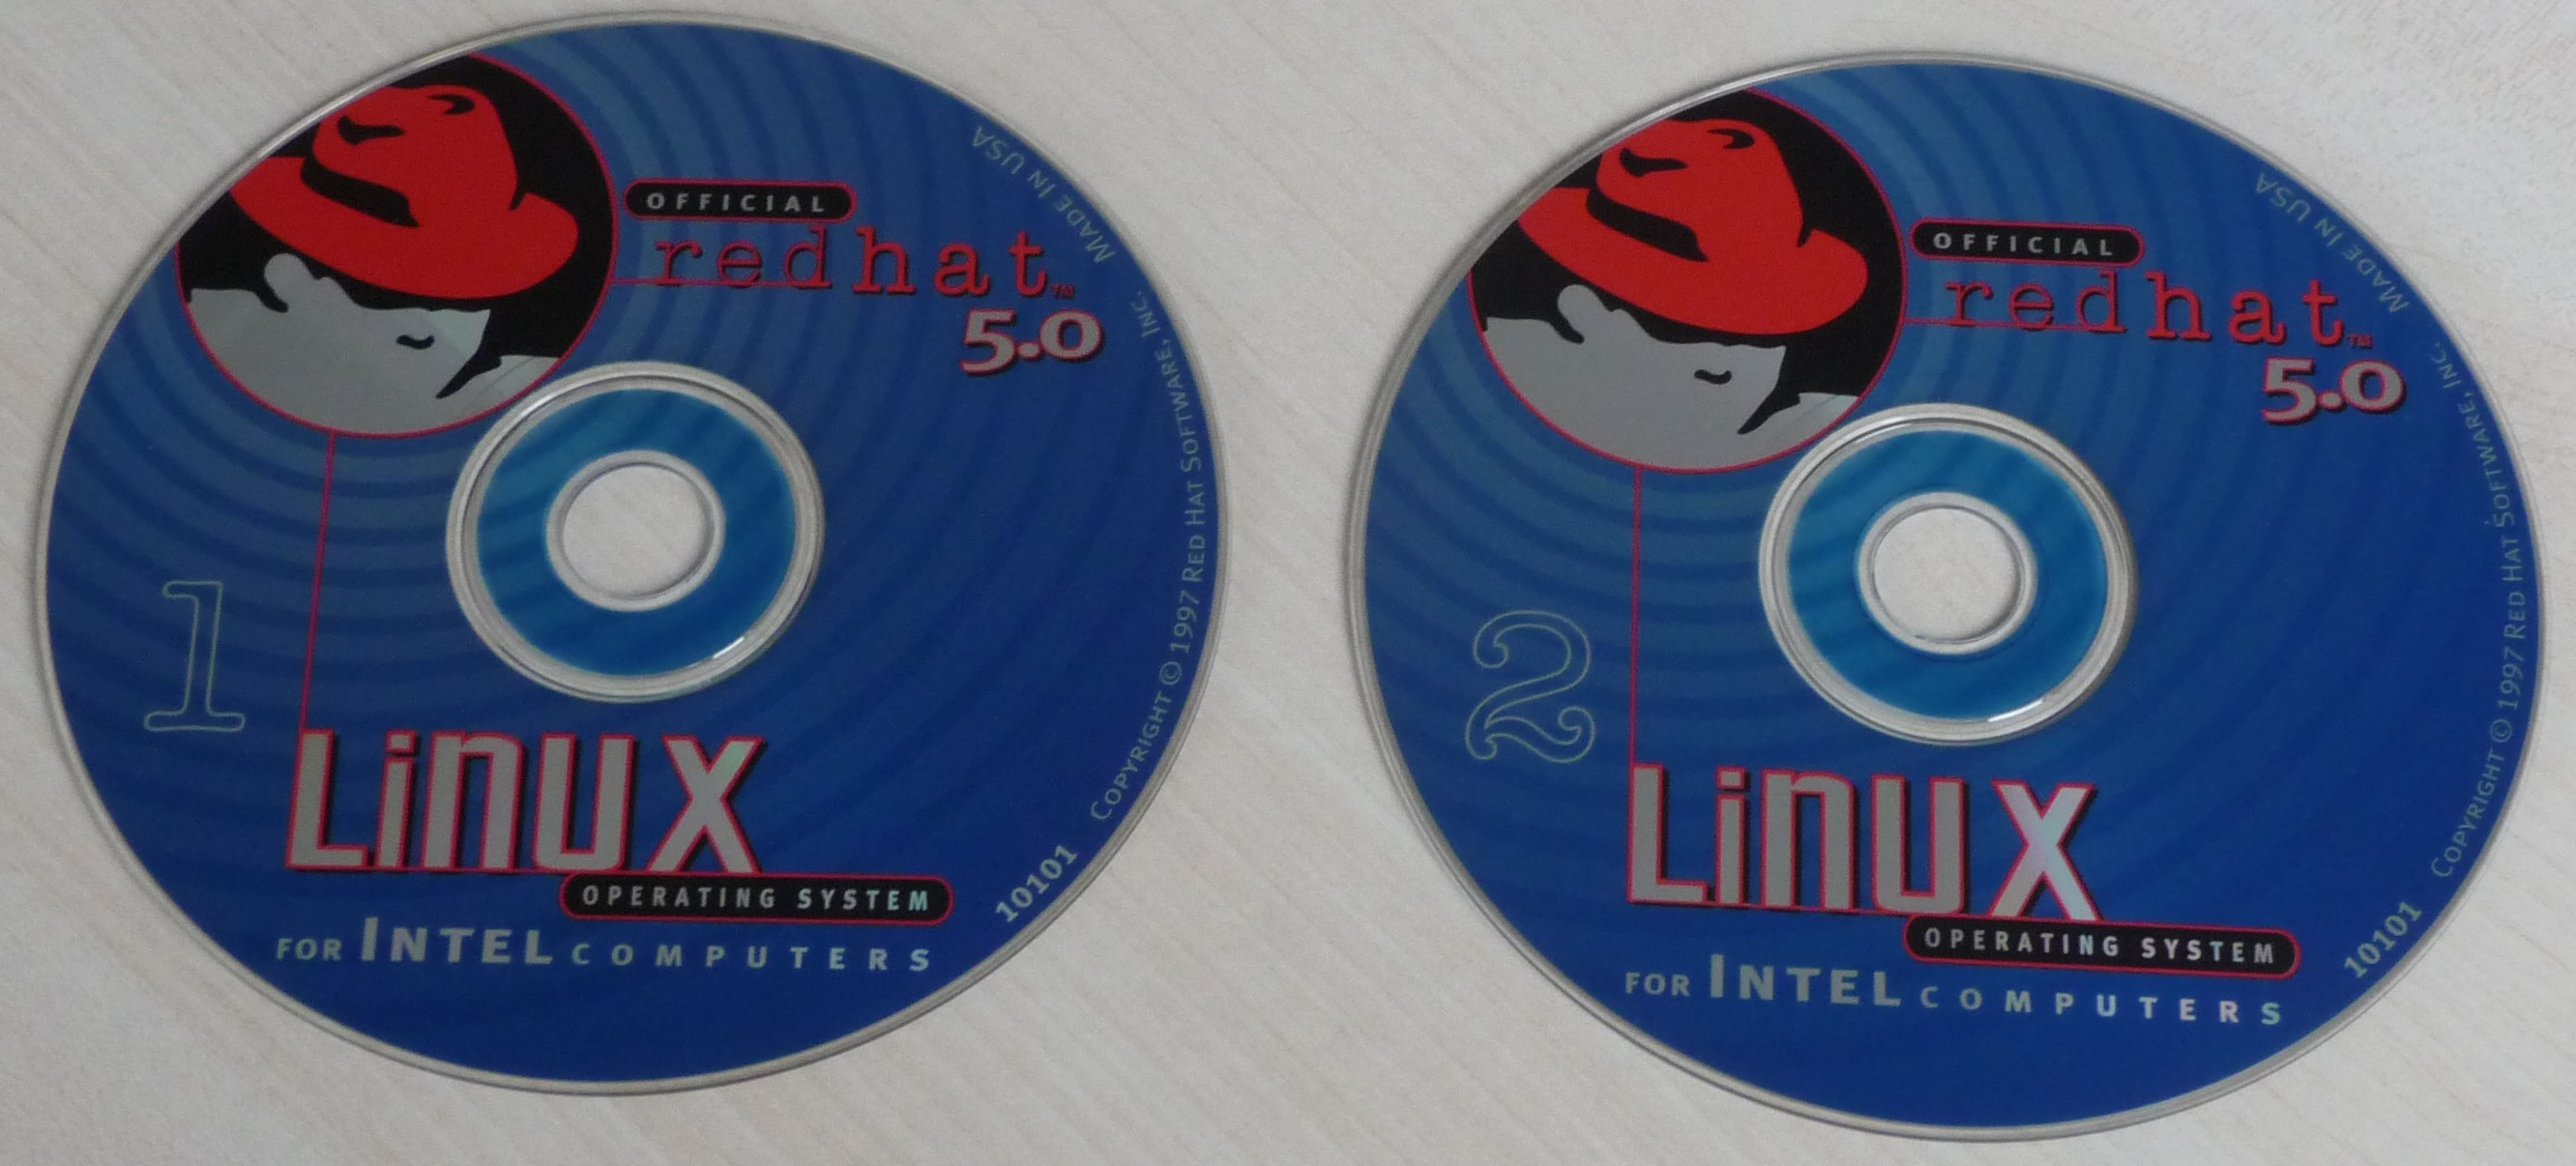 Red Hat Linux - Wikiwand